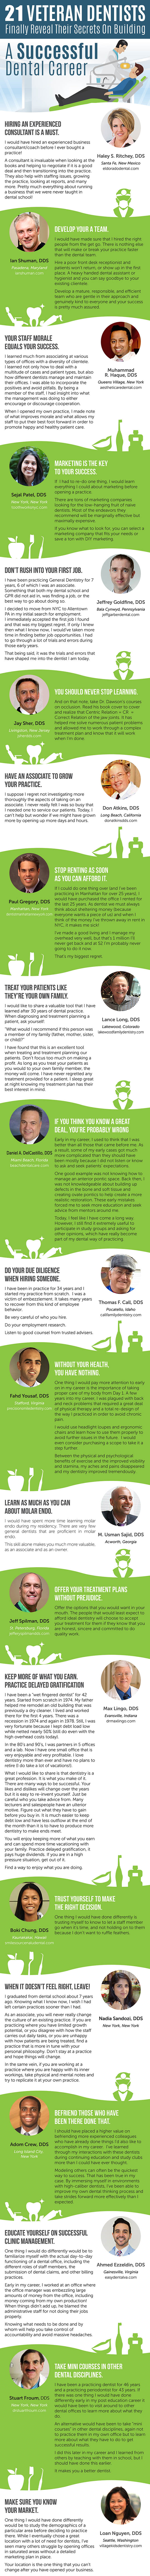 Sucessful Career Blog Infographic